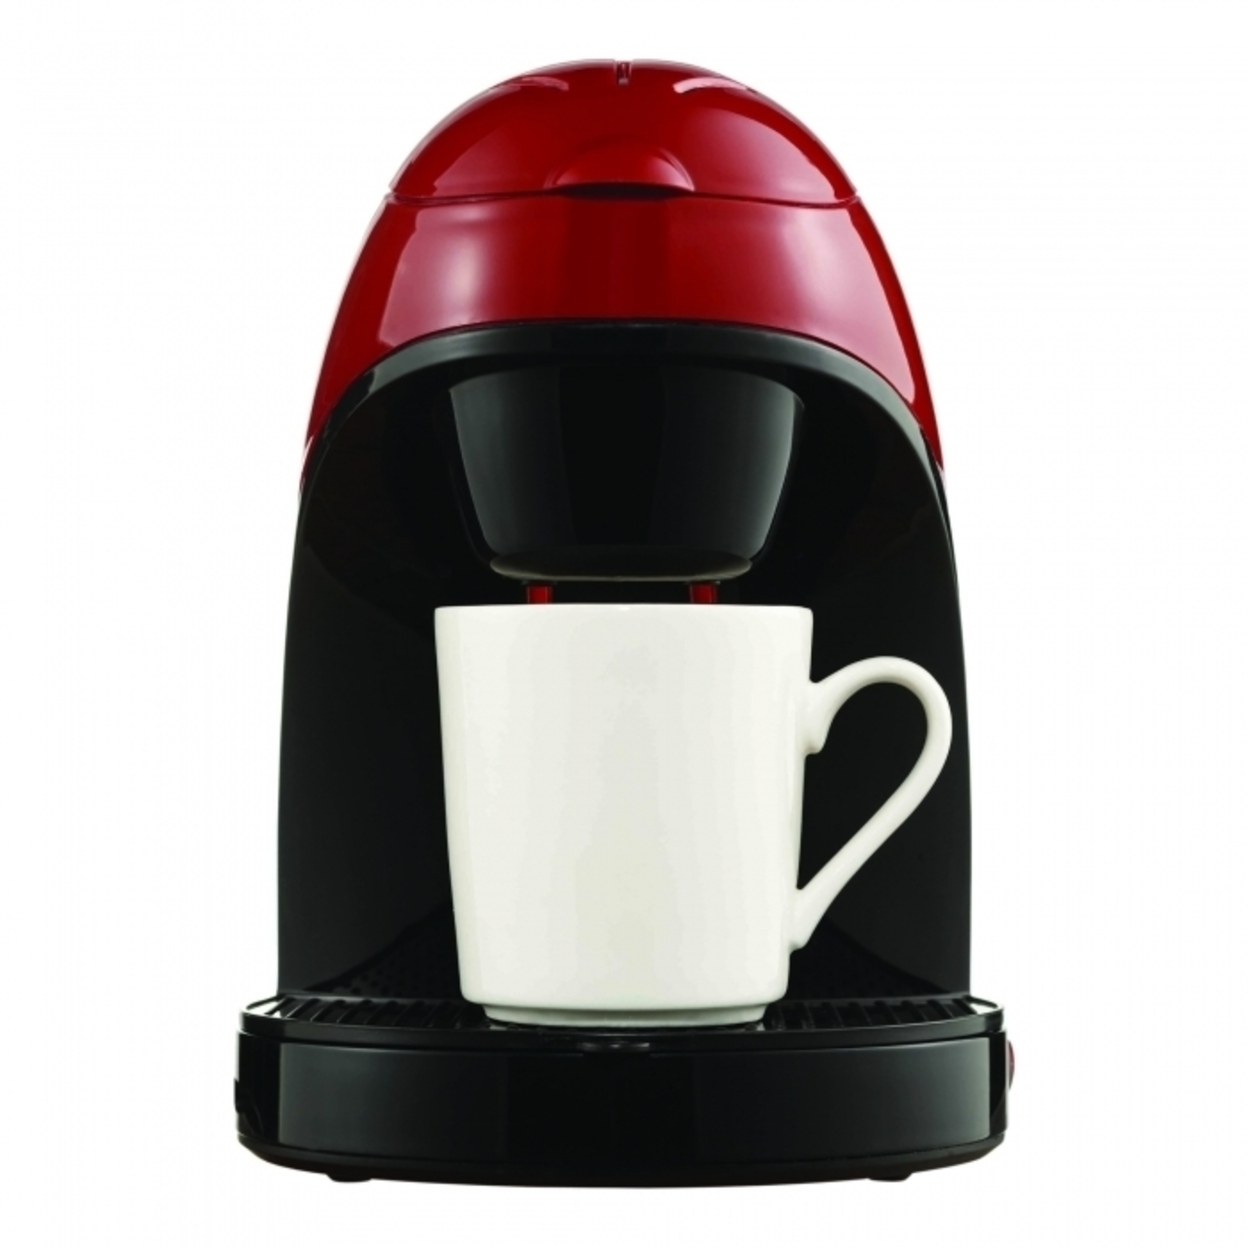 Brentwood Ts112R Single Cup Coffee Maker - Red 596e237c2a00e4592c481760